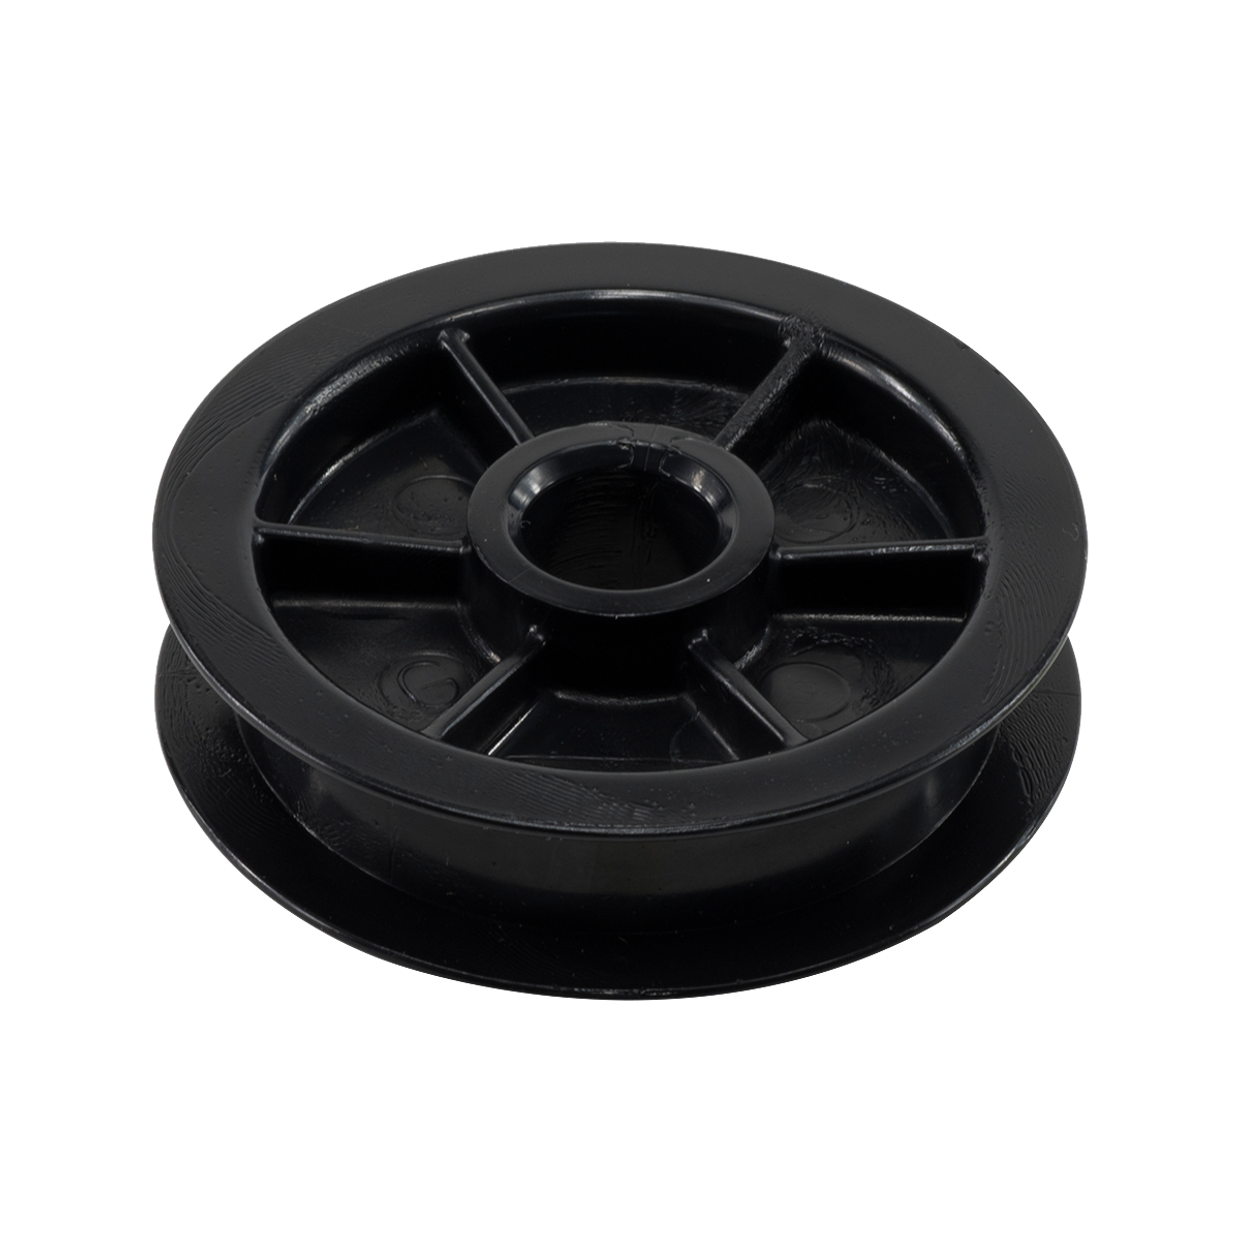 144c0054m Replacement Idler Belt Pulley Chamberlain